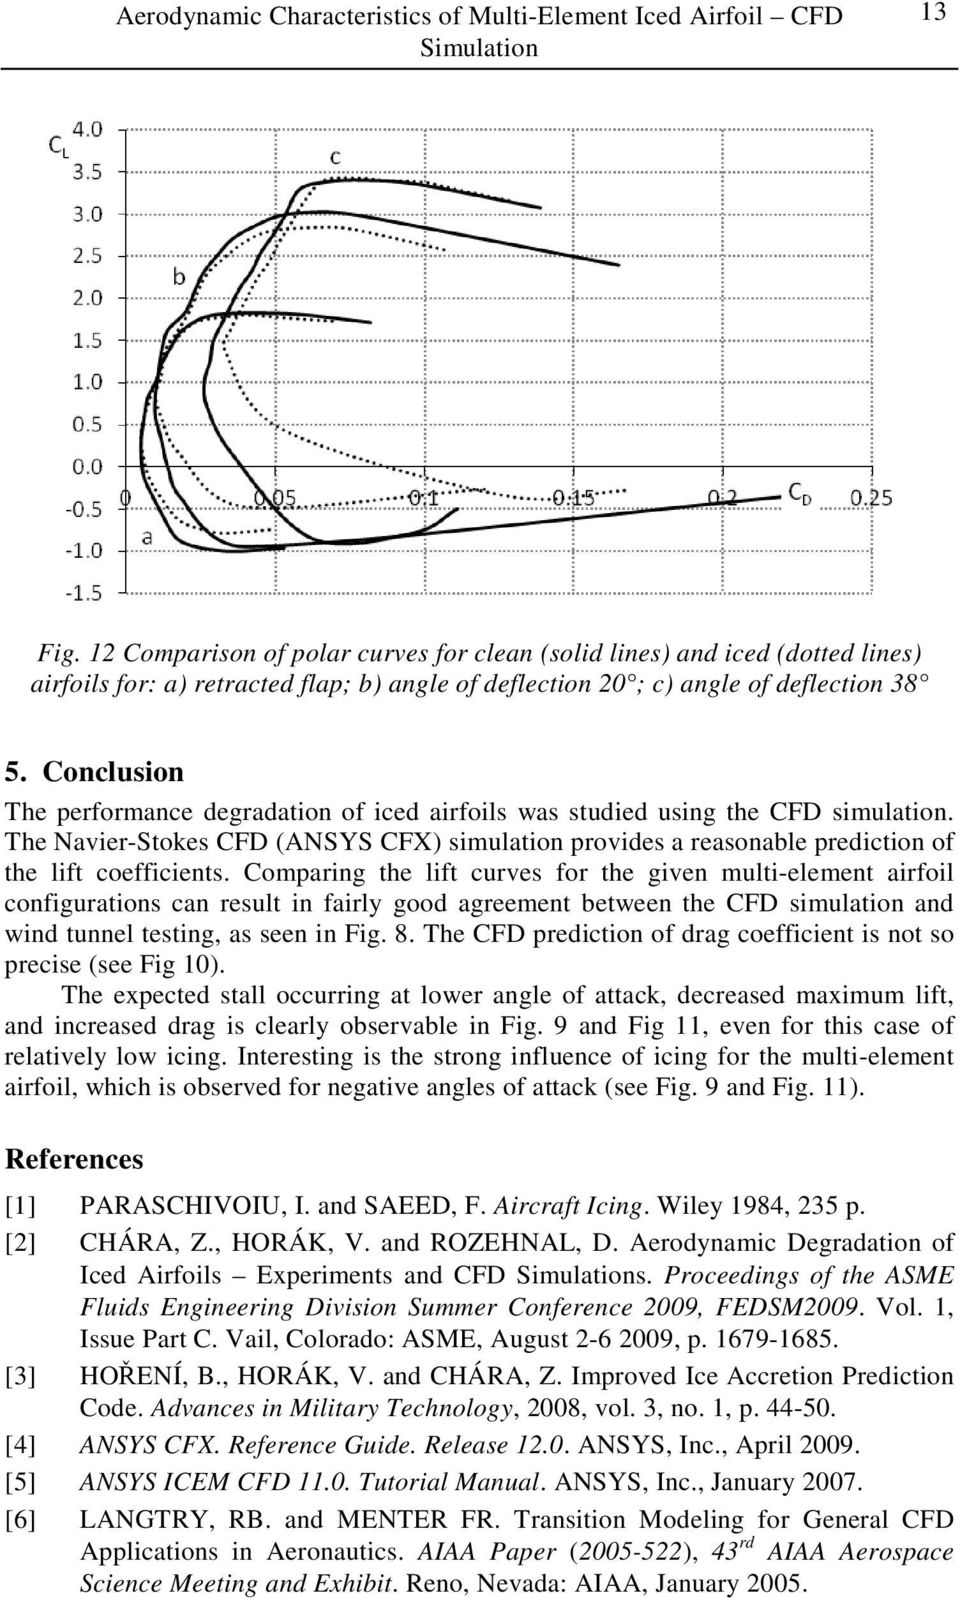 Conclusion The performance degradation of iced airfoils was studied using the CFD simulation. The Navier-Stokes CFD (ANSYS CFX) simulation provides a reasonable prediction of the lift coefficients.